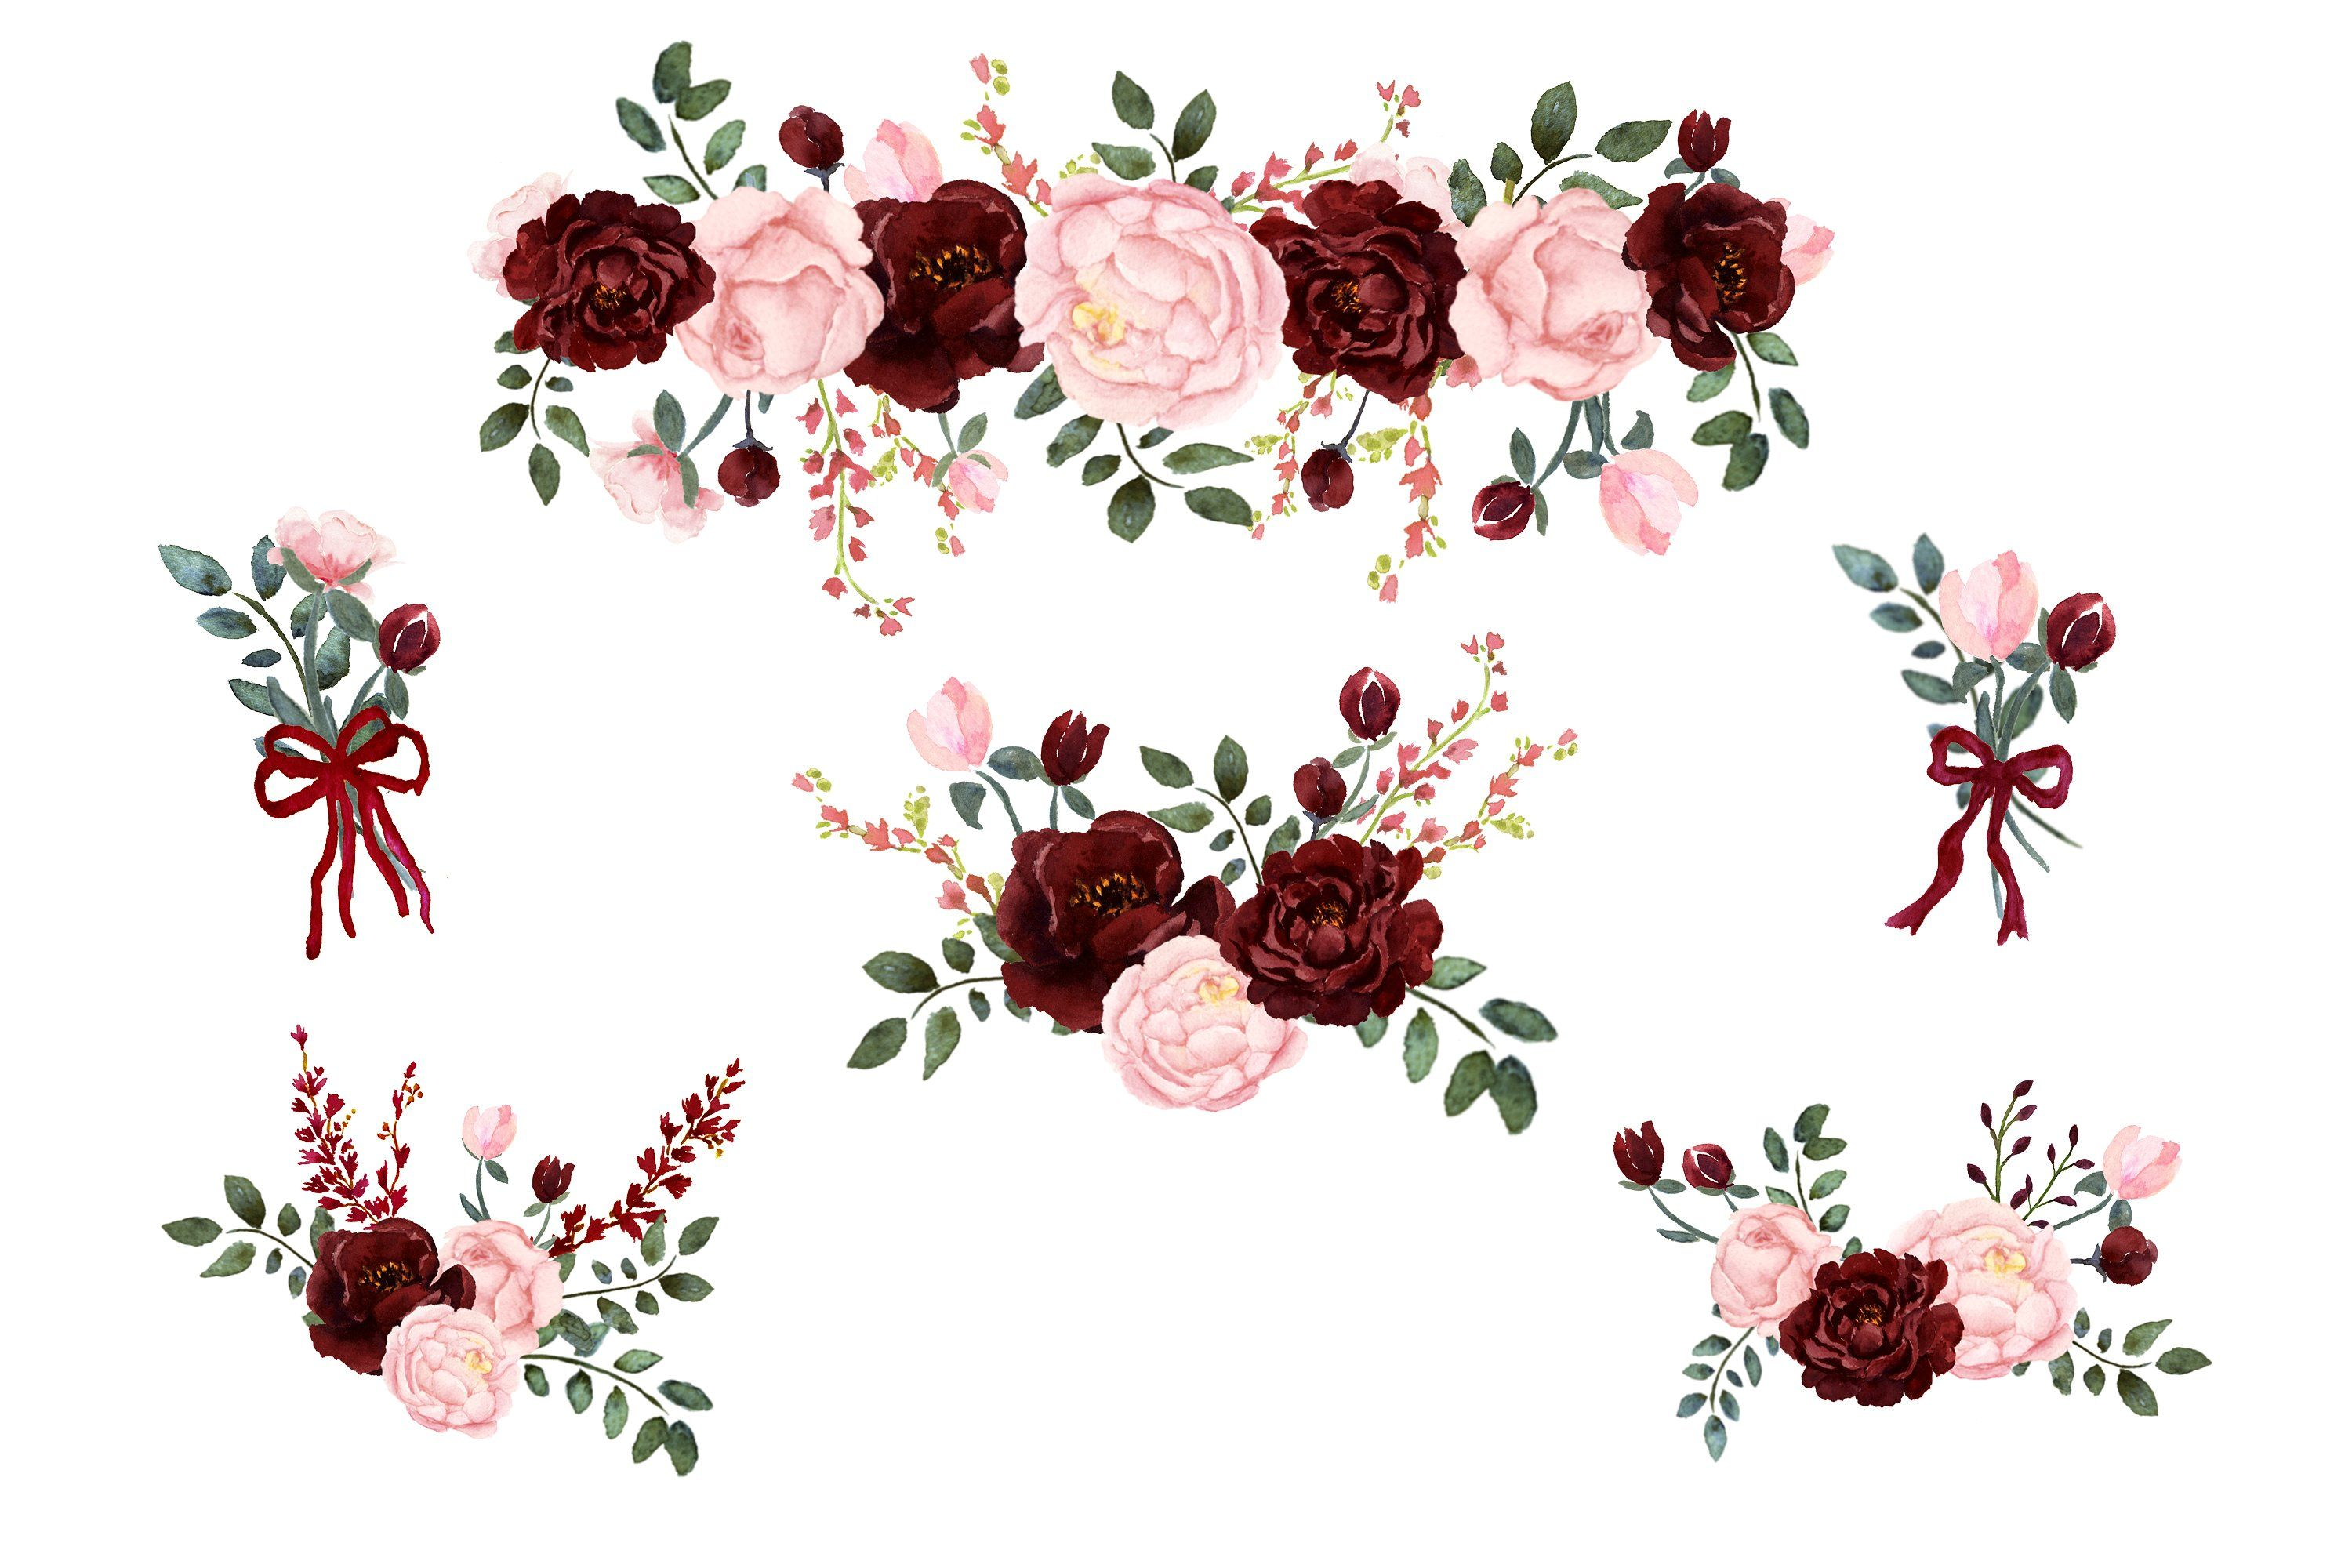 Blush & Burgundy Watercolor Clip Art by Graphic Blue Bird on.